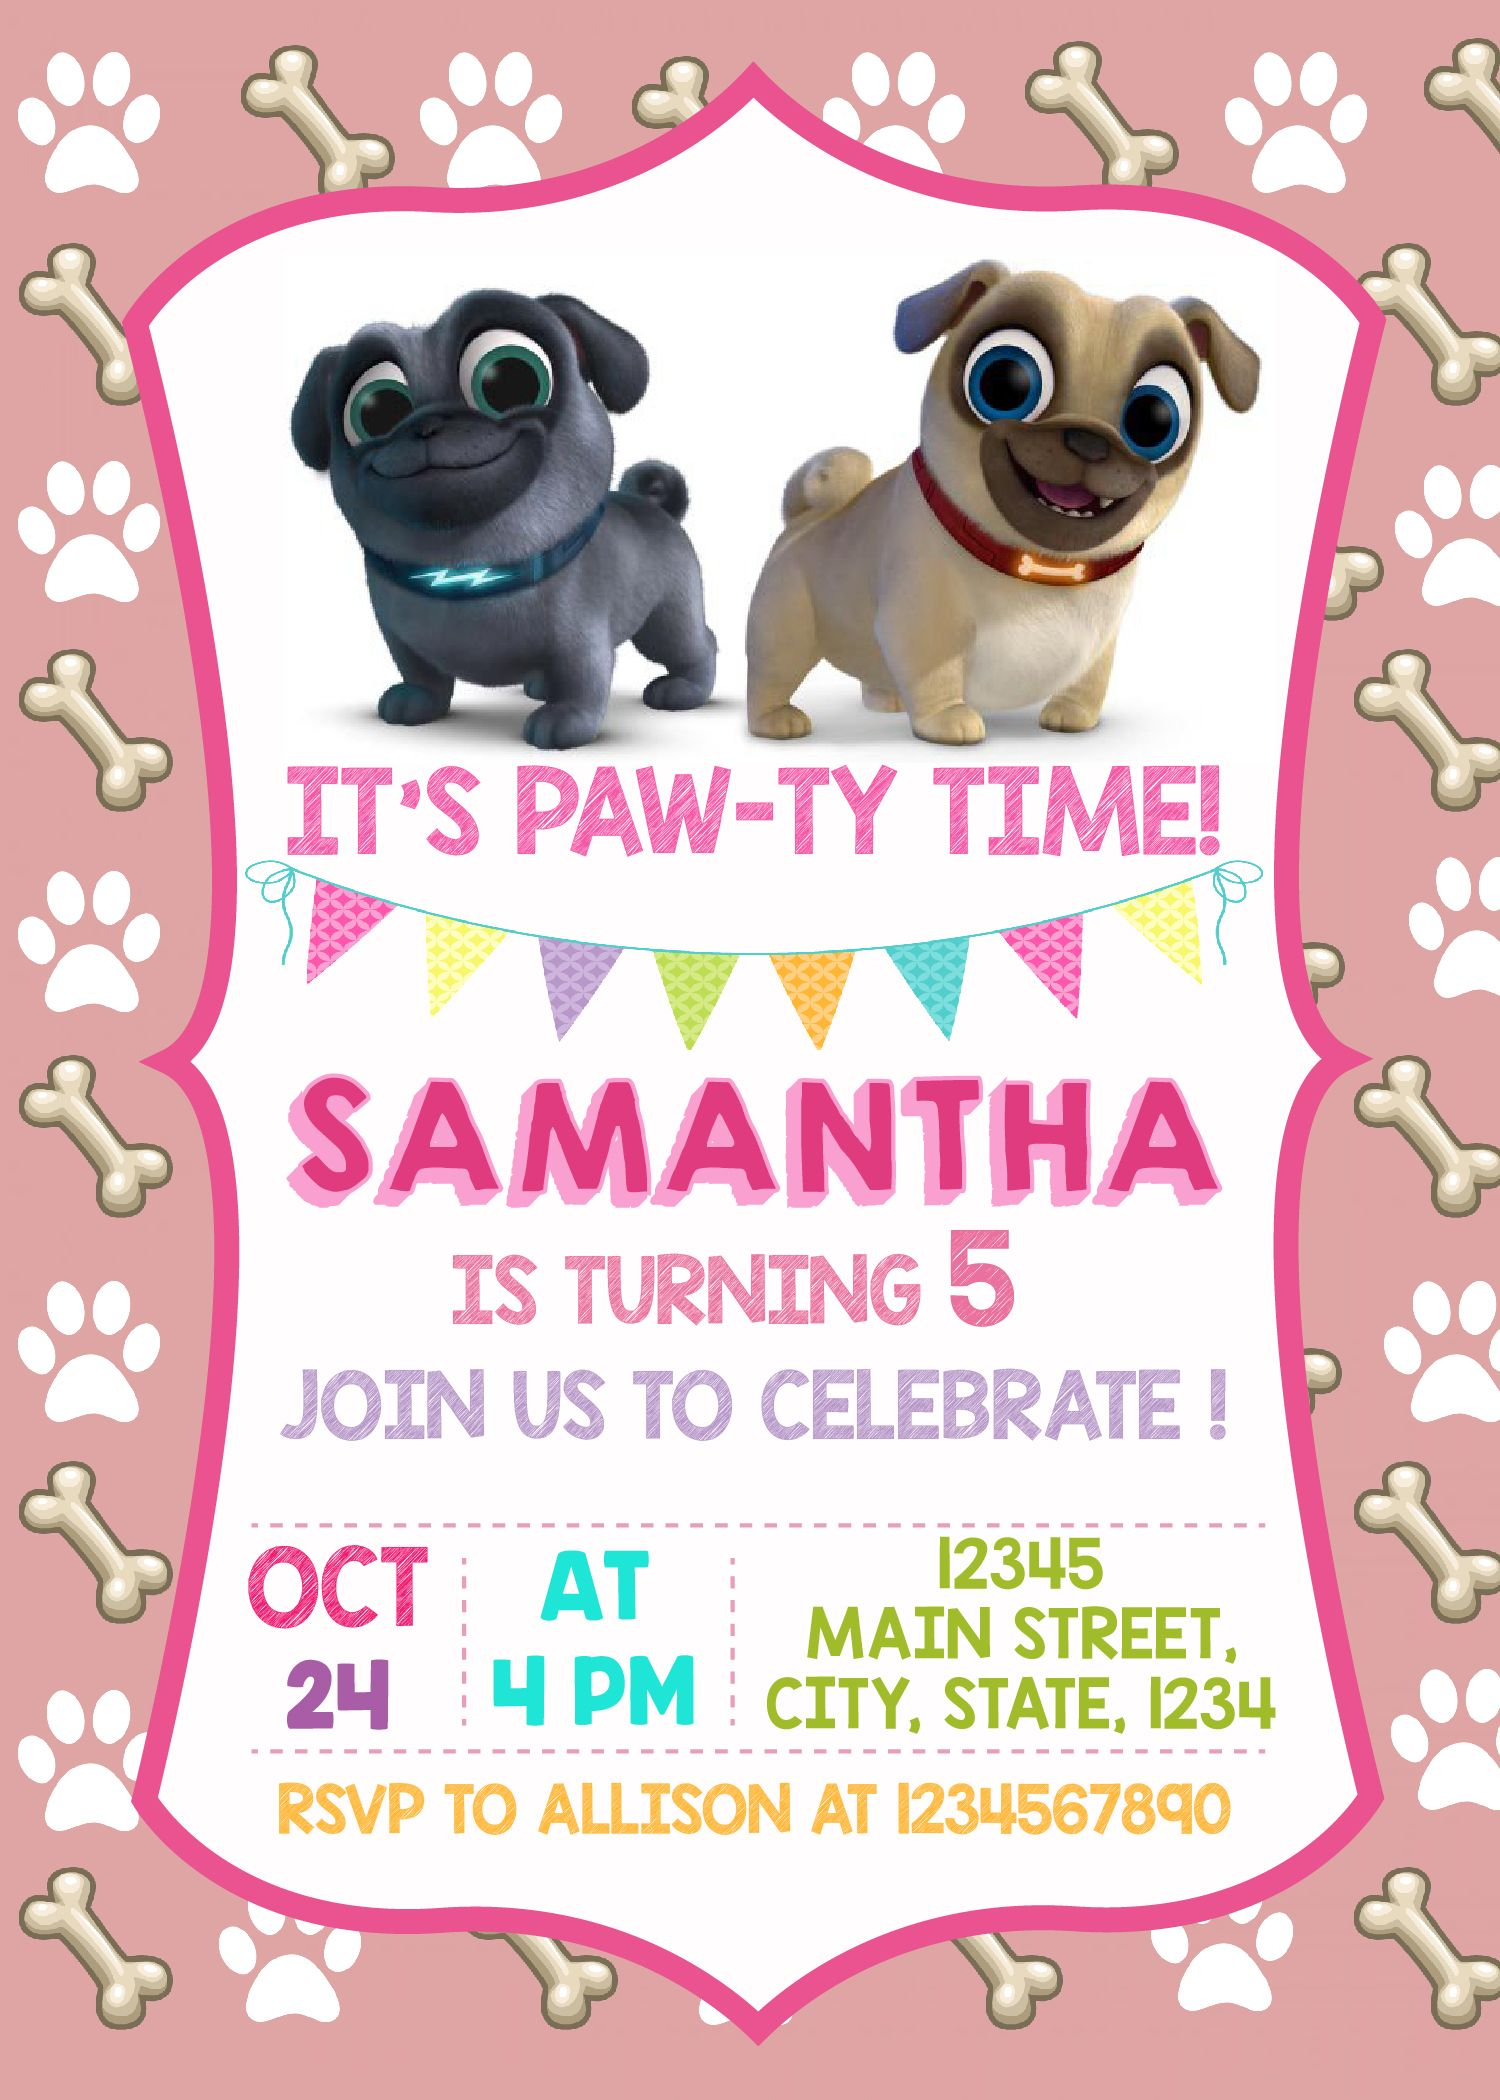 Puppy Dog Pals Printed Invitation Puppy Dog Pals Invite Etsy Puppy Birthday Parties Party Invitations Kids 2nd Birthday Party Themes